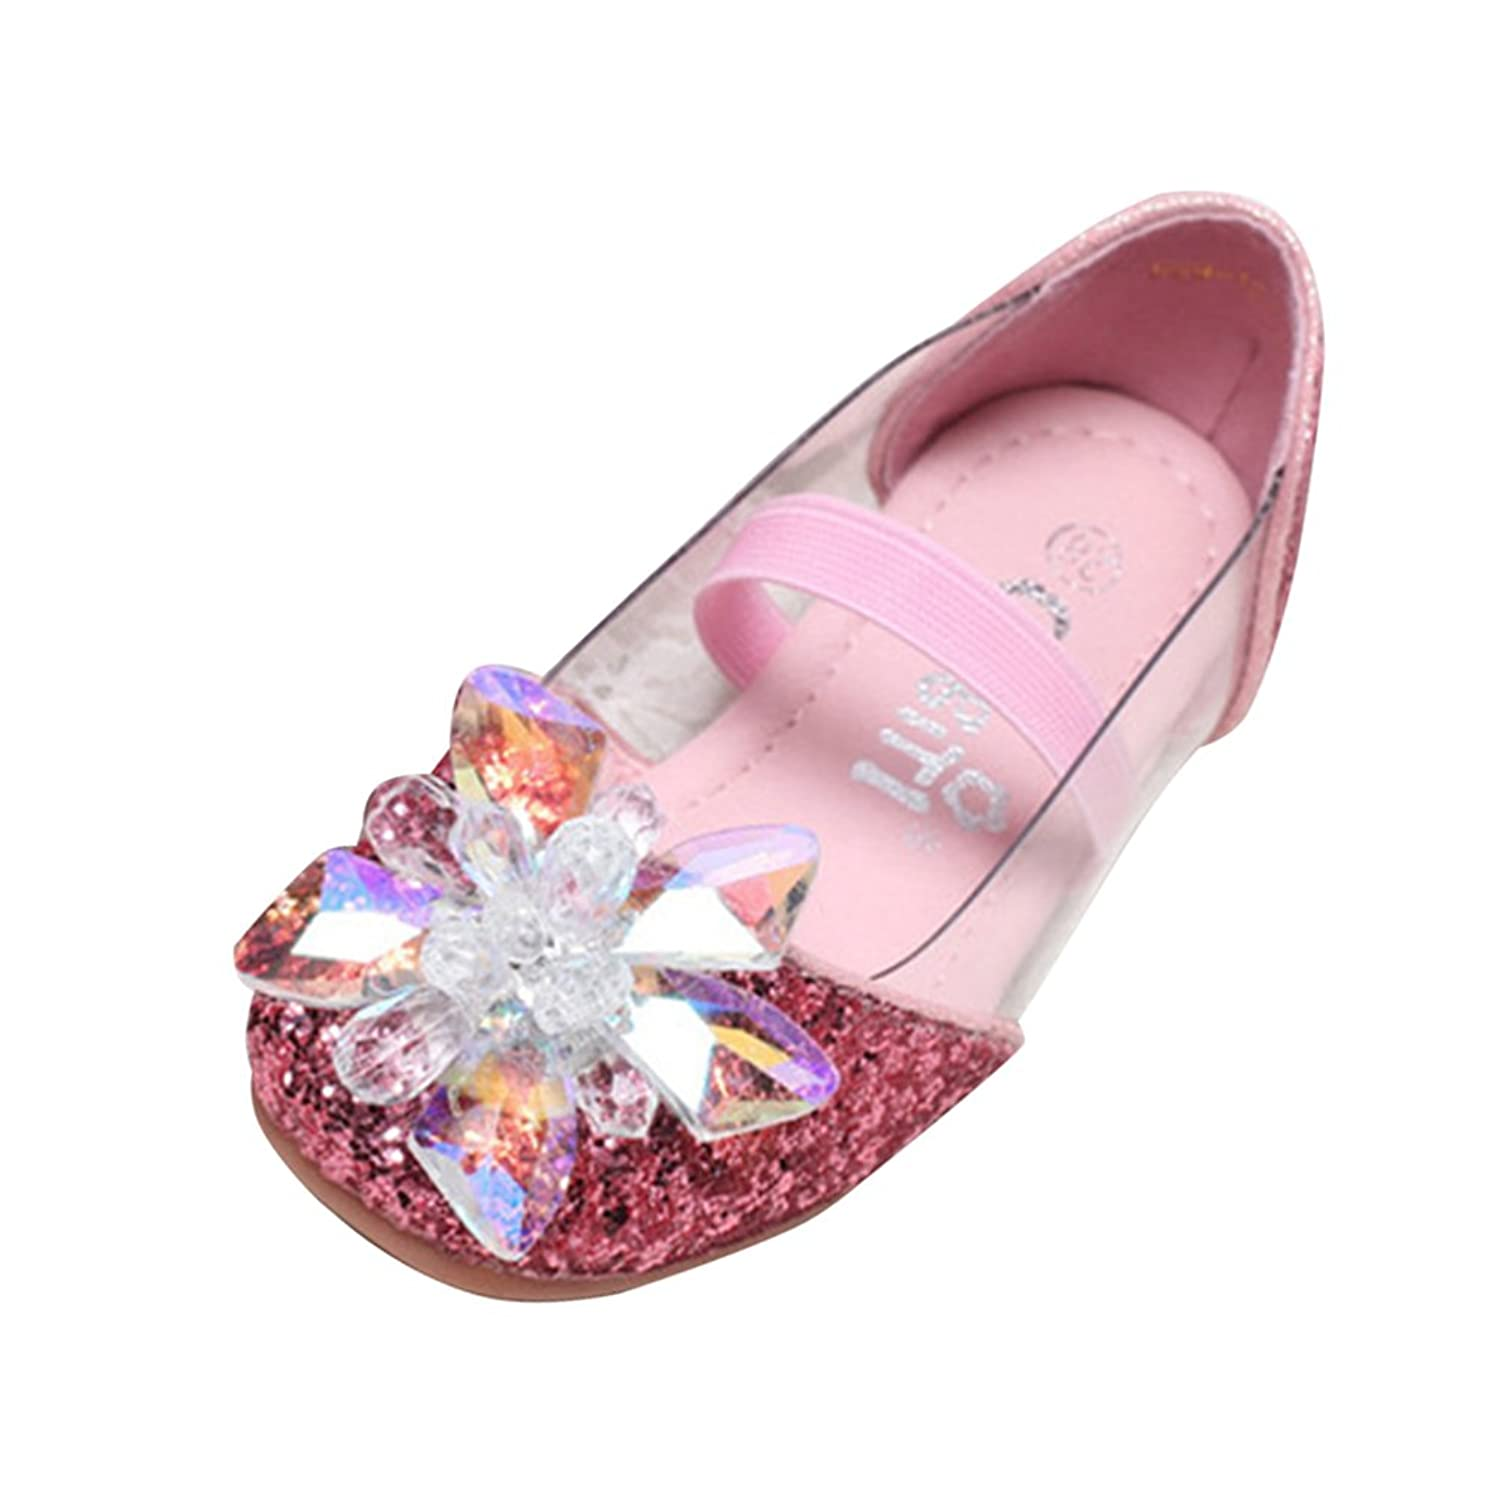 a349f2ef418 Amur Leopard Kids Girls Mary Jane Shoes Diamonds Glitter Powder Bowknot  Dance Wedding Princess Shoes(